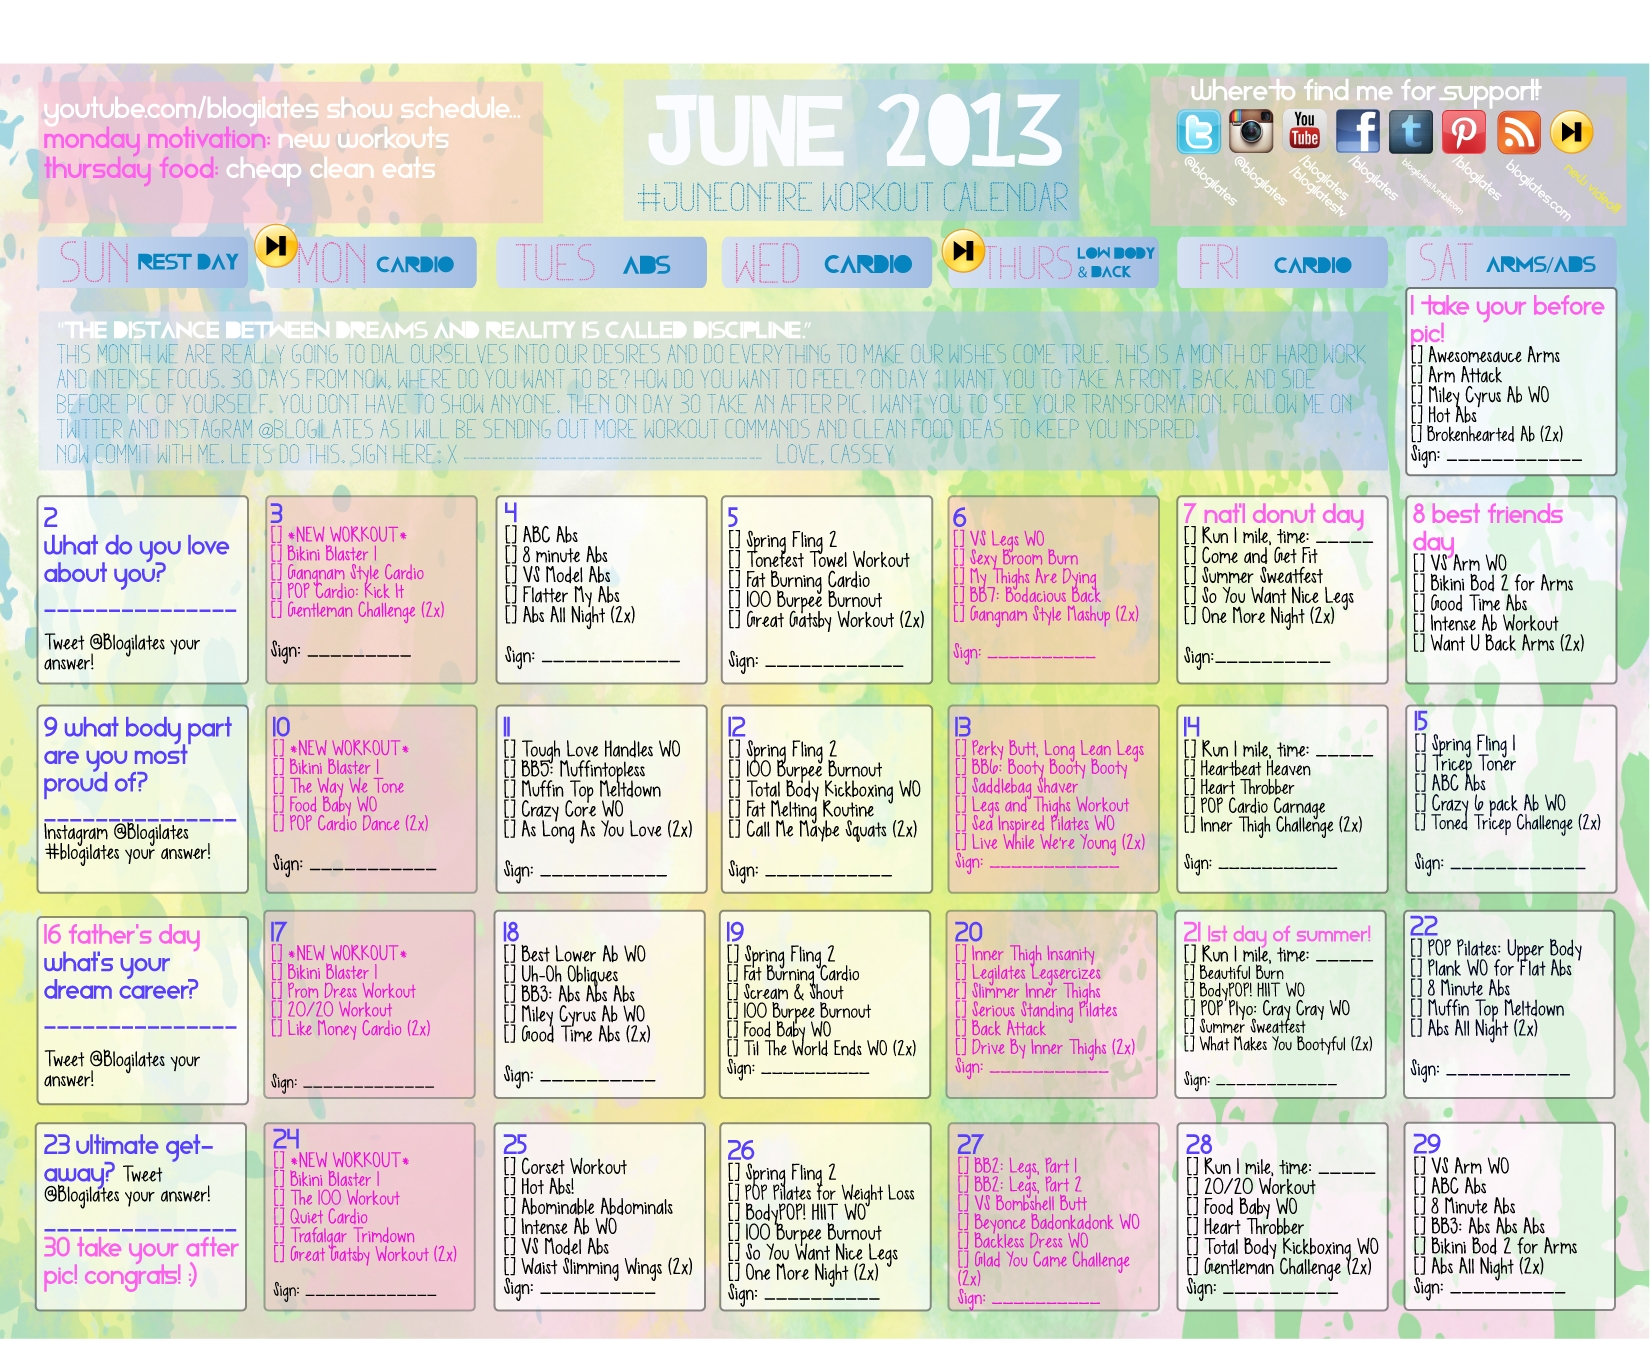 Gonna Try To Follow This Workout Calendar For June Whos With Me  Xjb